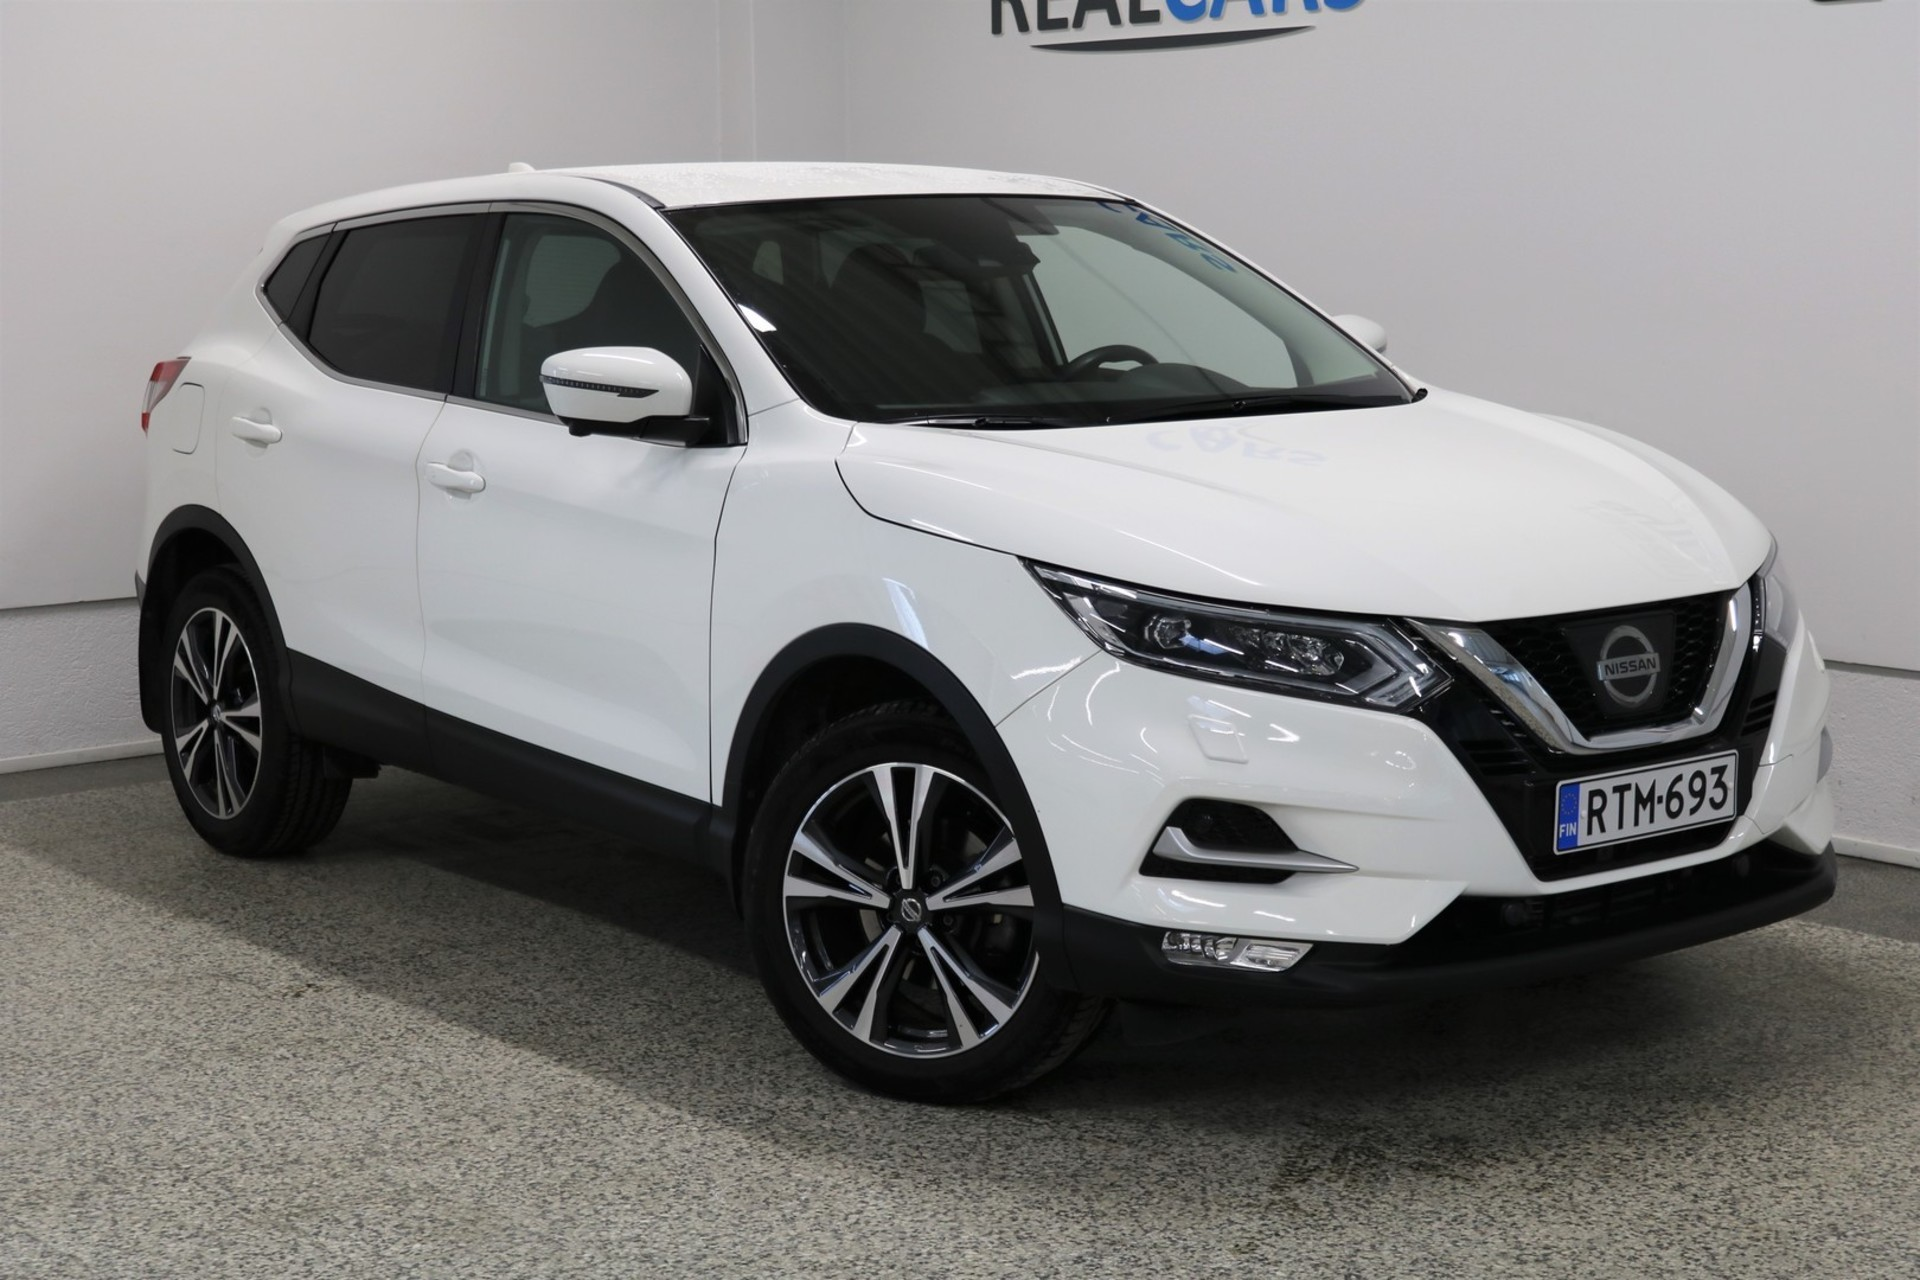 NISSAN QASHQAI dCi 130 N-Connecta 2WD Xtronic LED